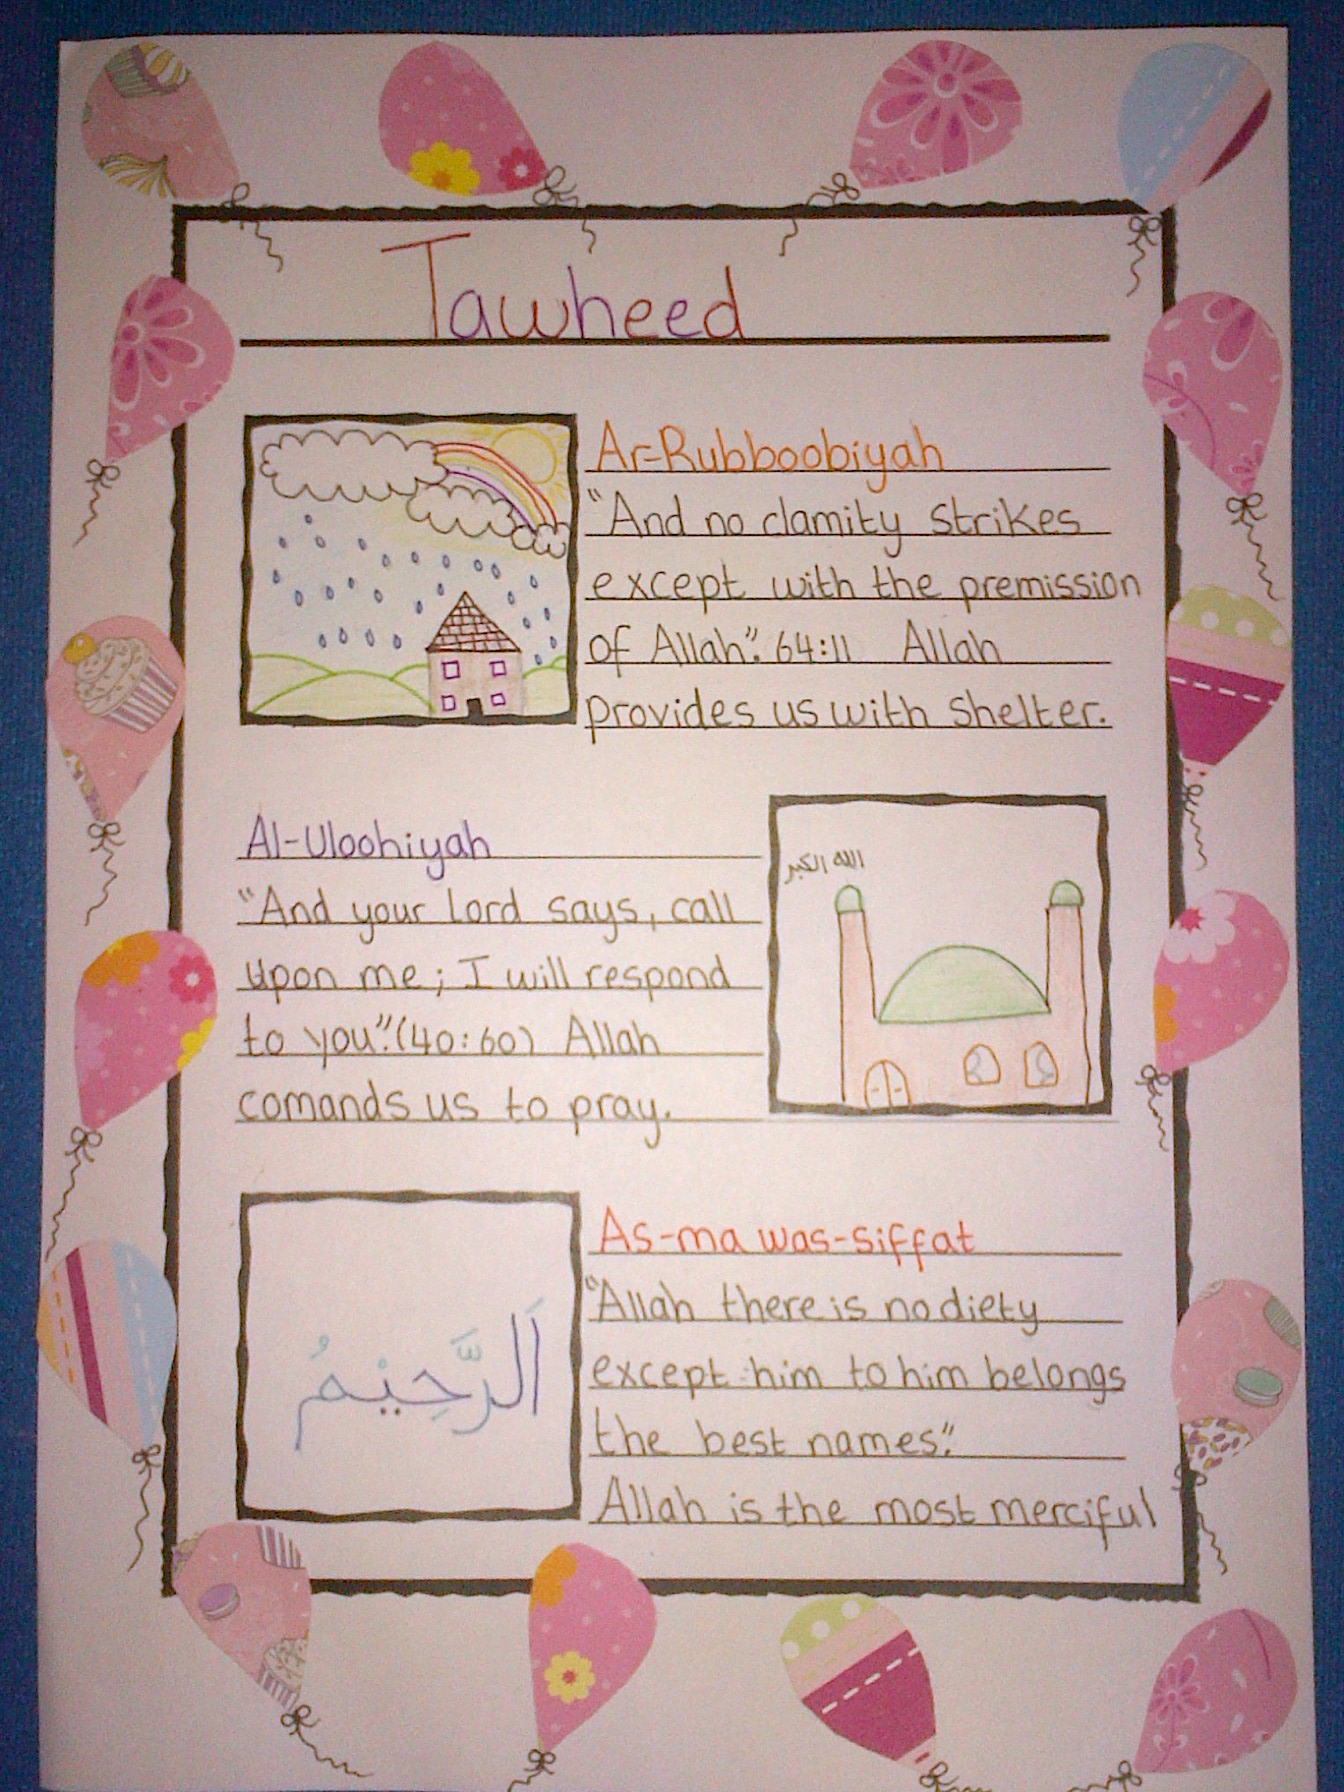 Tawheed Activities For Kids